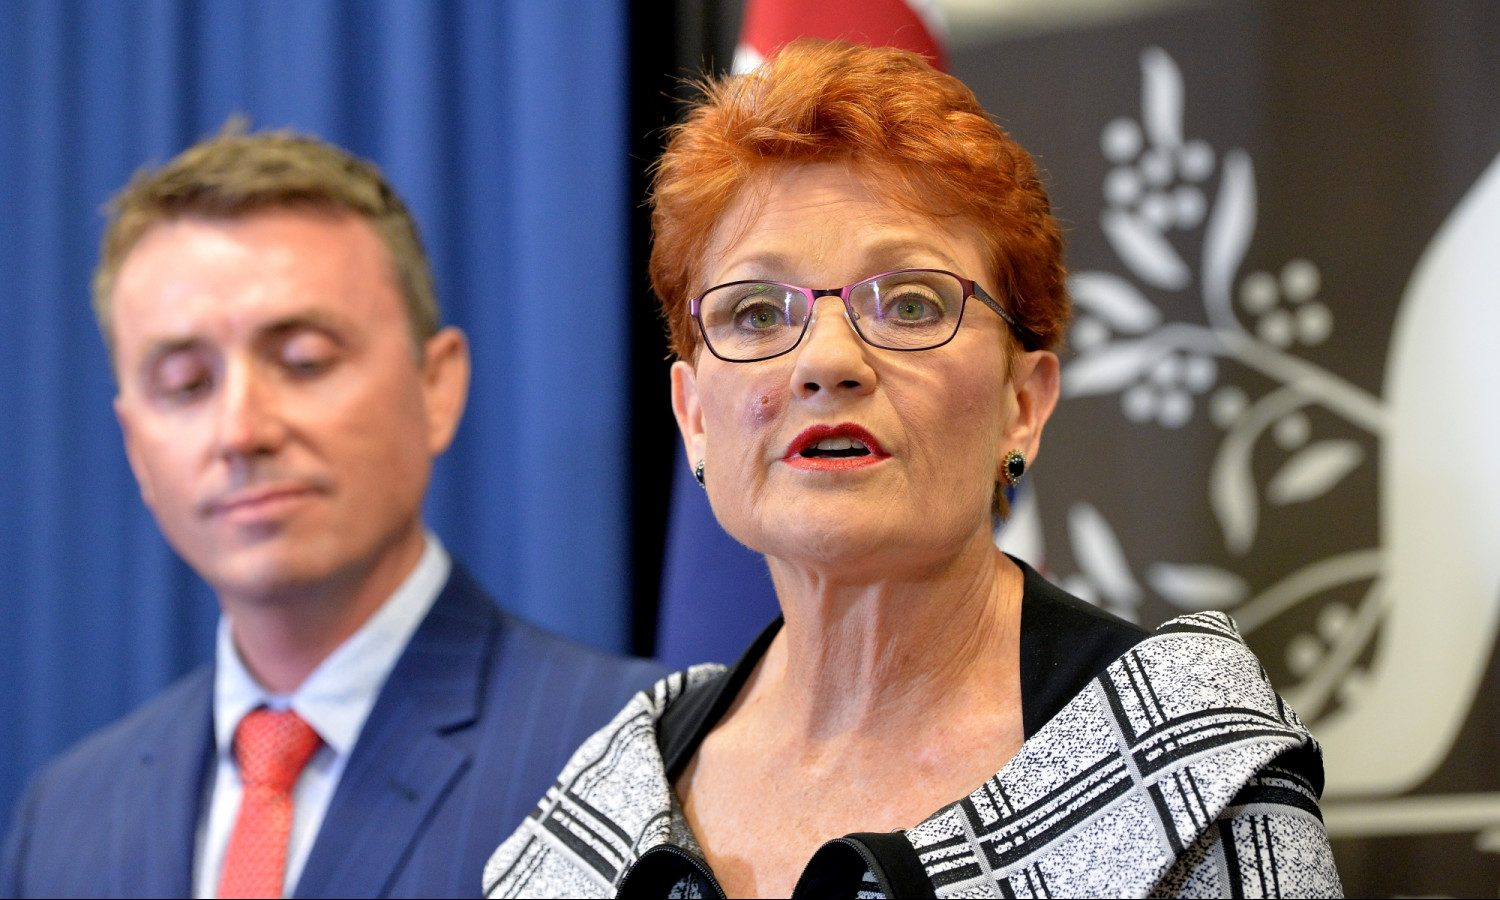 Australia's Pauline Hanson to Preference Coalition on 'How to Vote' Cards in 4 Key Seats